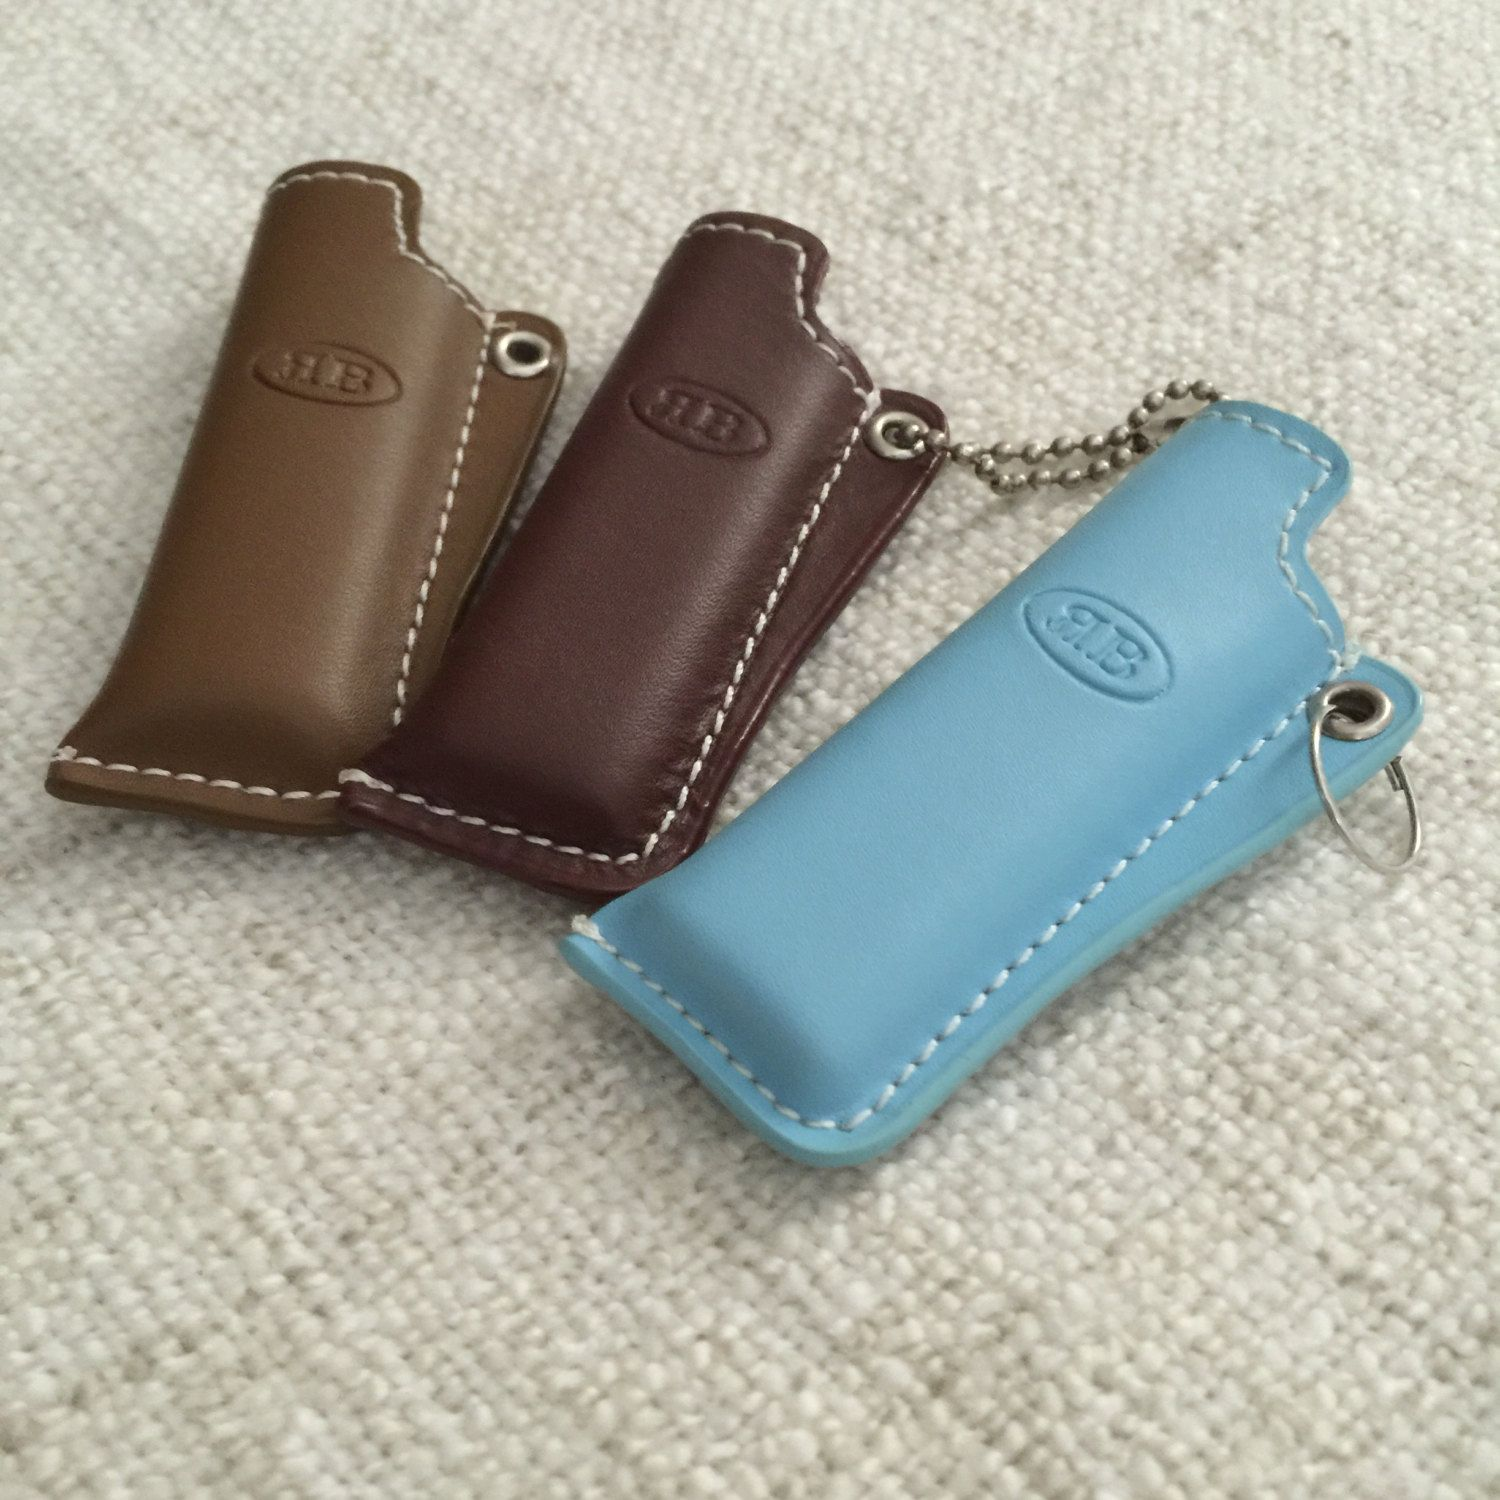 Top Stitched Genuine Leather Lighter Cover Case by ENGARLAND on Etsy